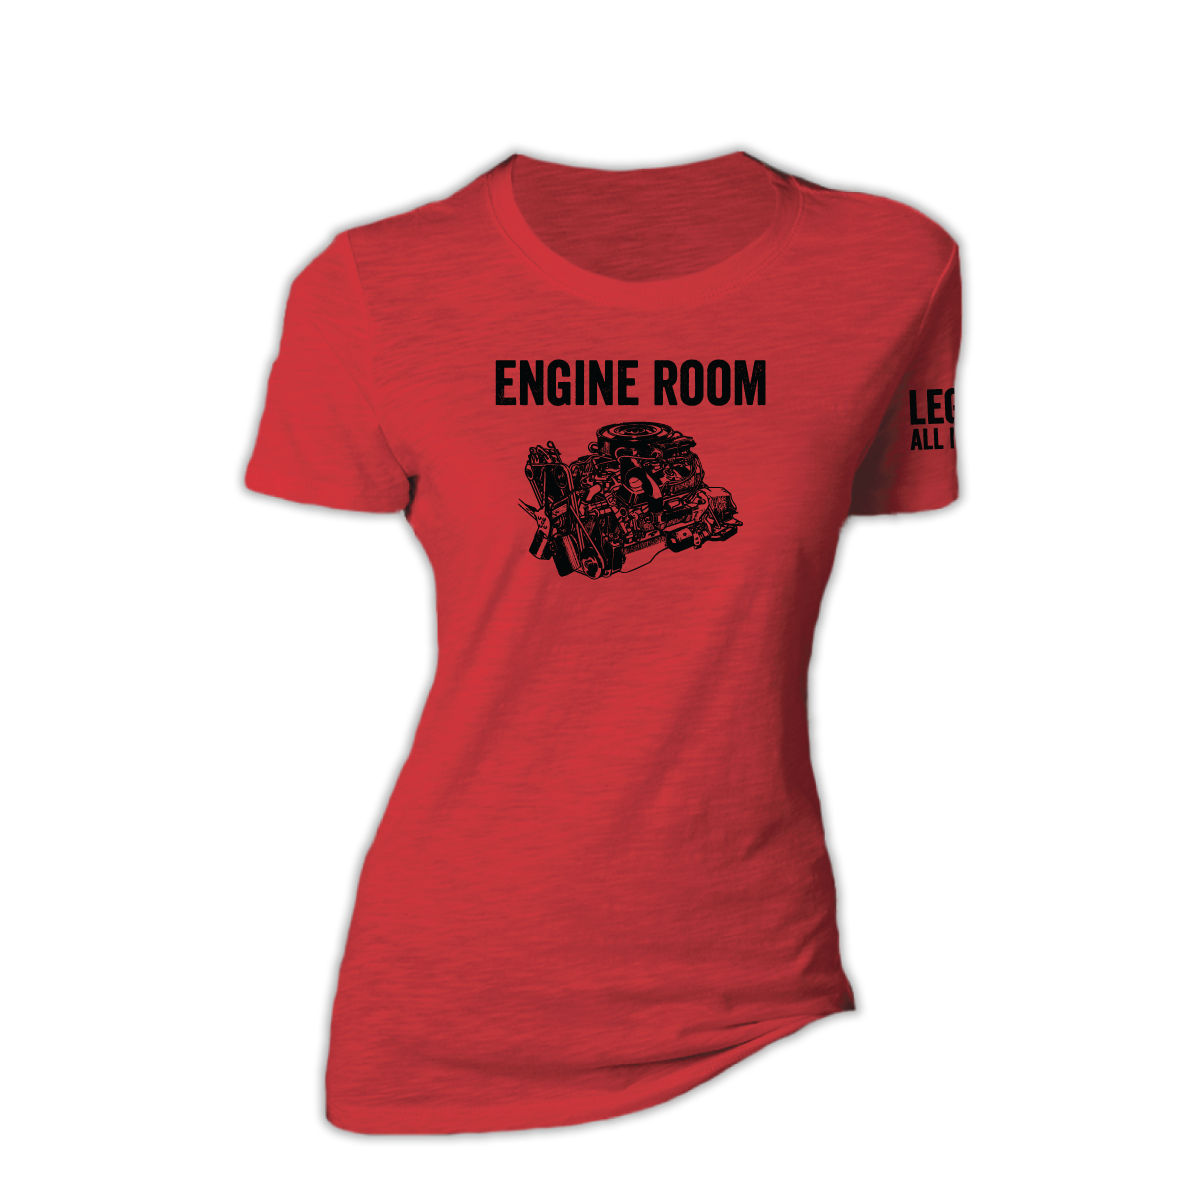 Women's Engine Room triblend tee